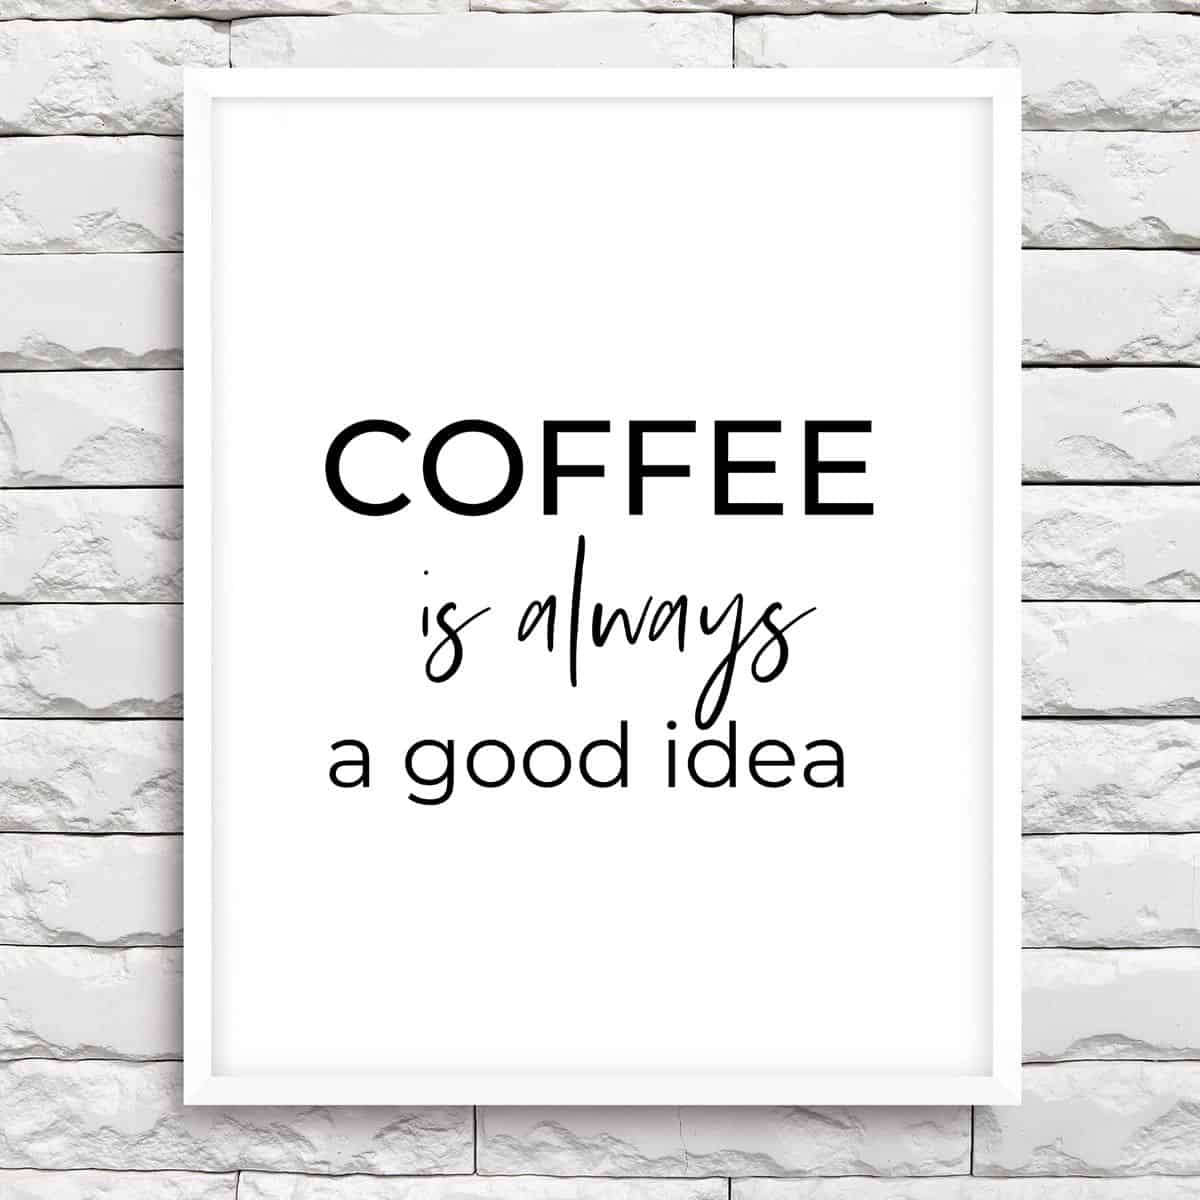 White frame on the brick wall with the text: Coffee is always a goof idea